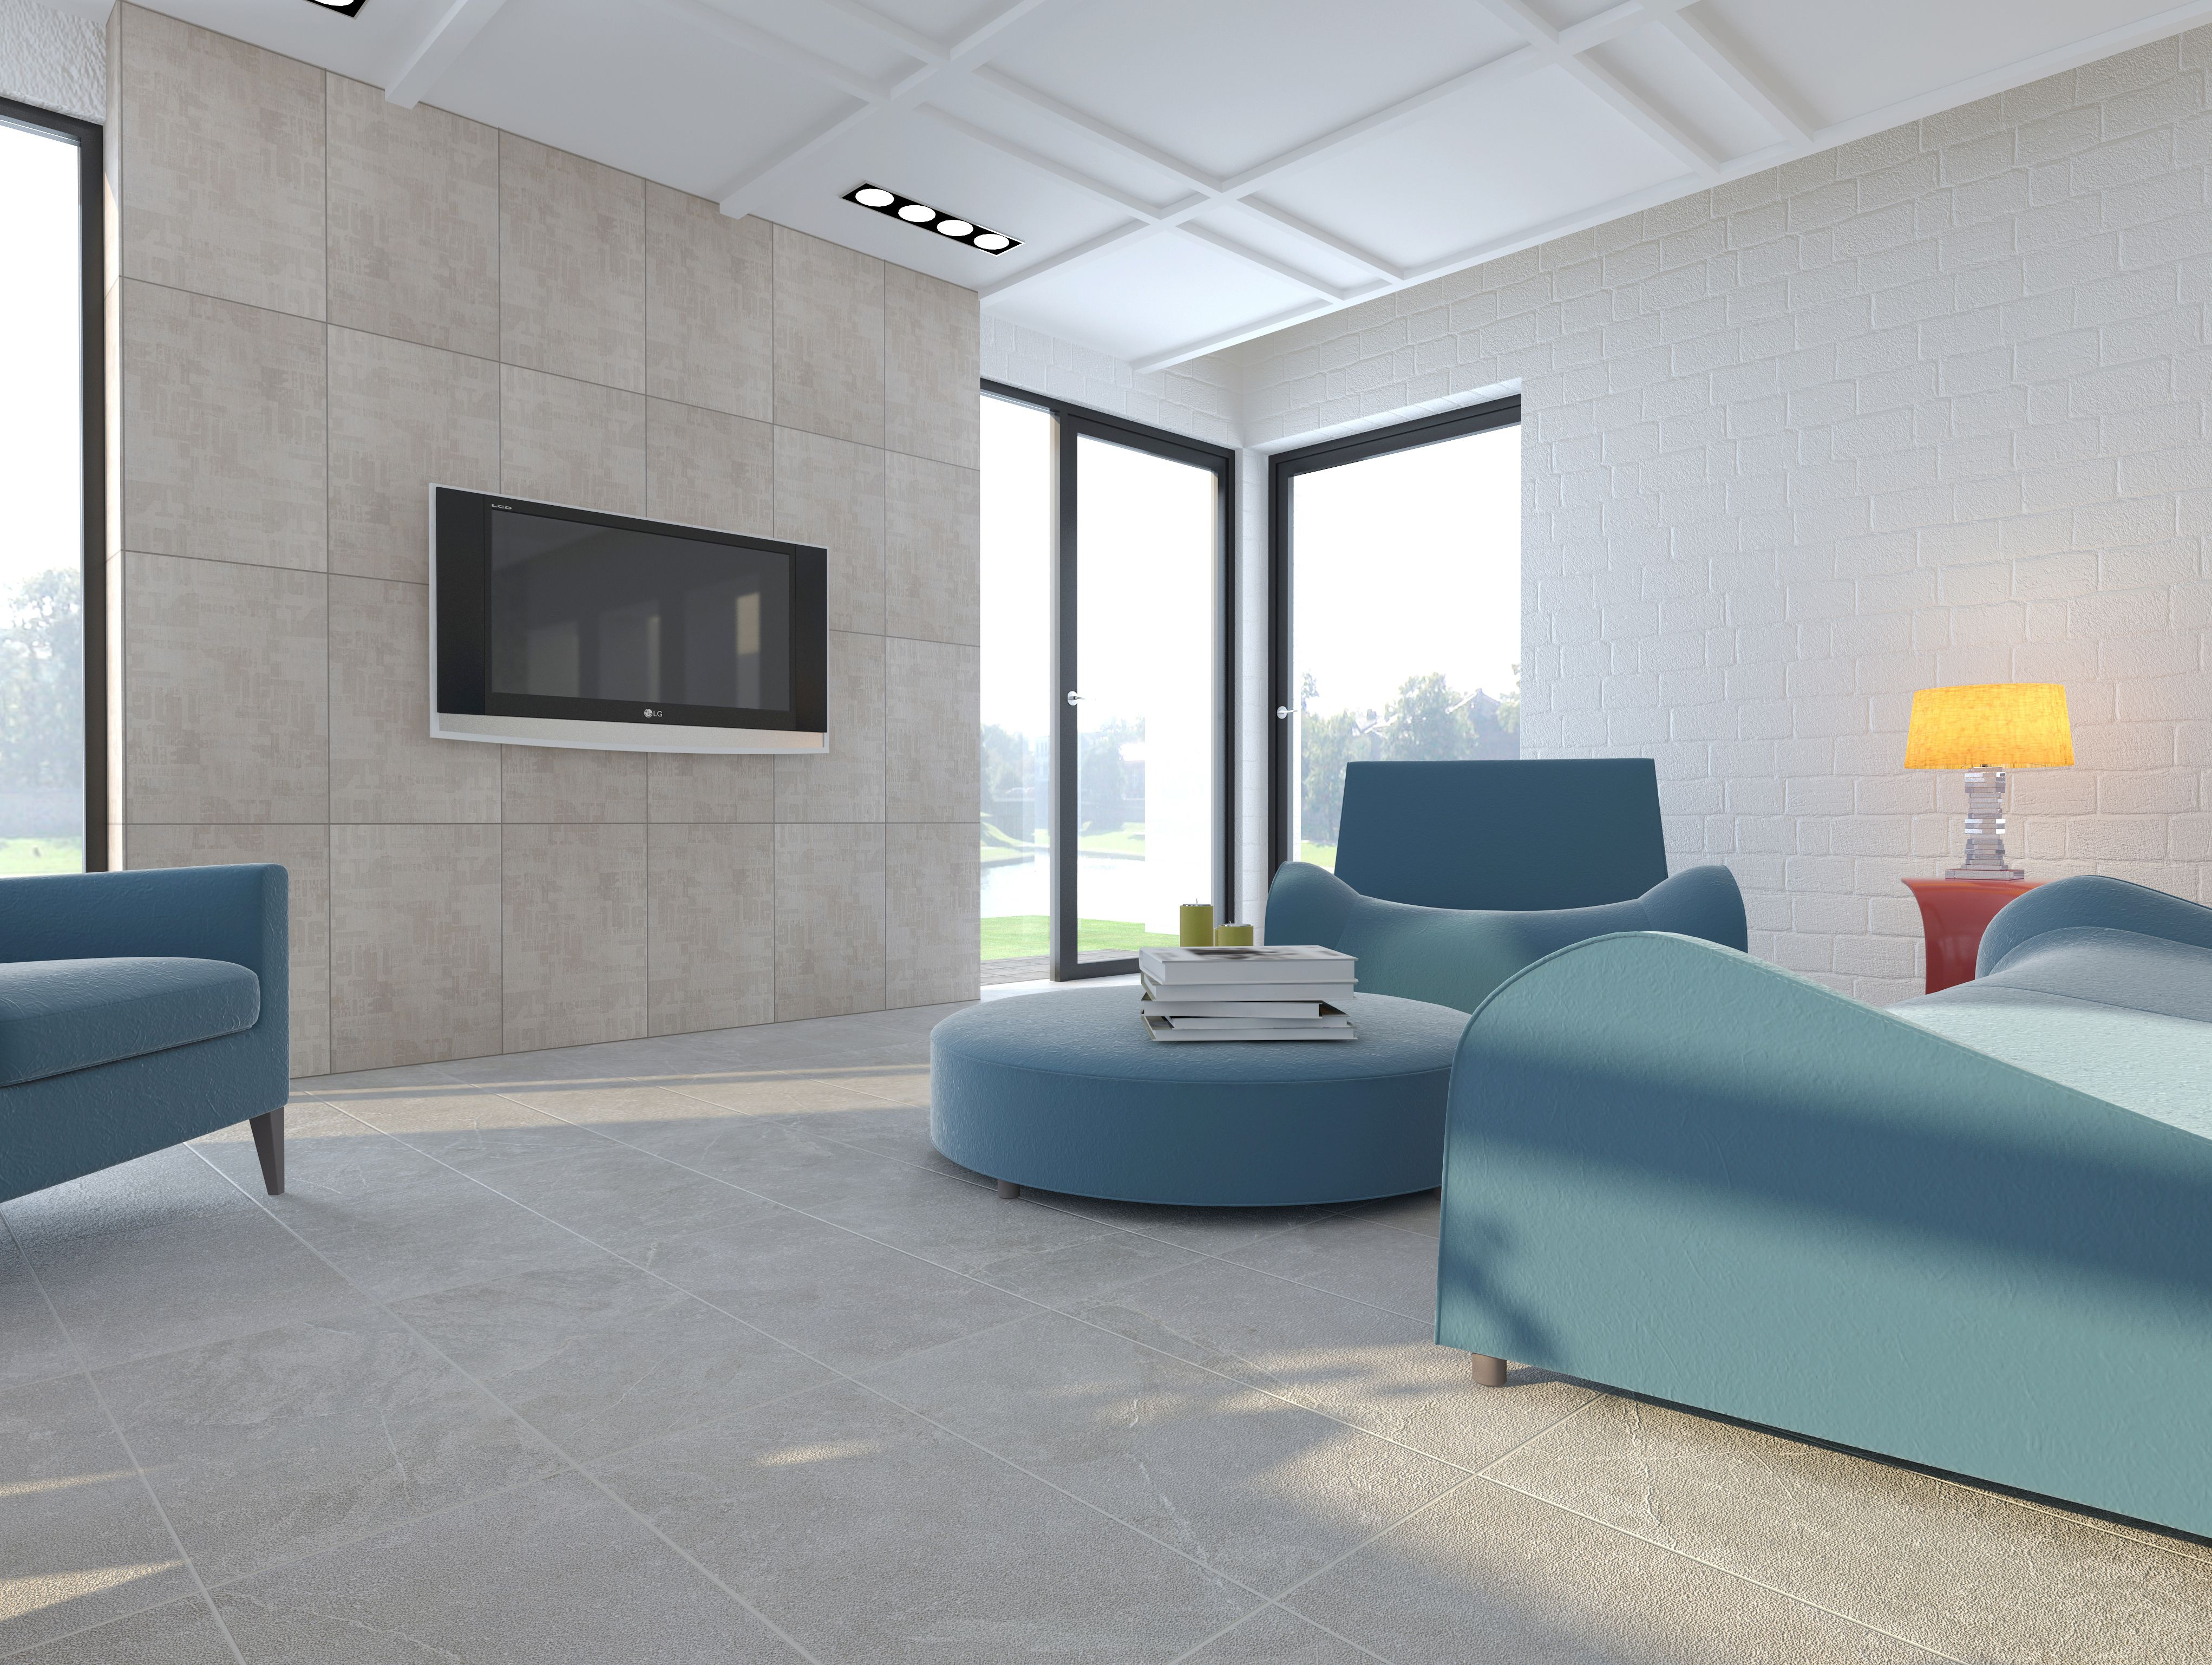 Interceramic trio pietra glazed porcelain floor tile for Porcelanato interceramic